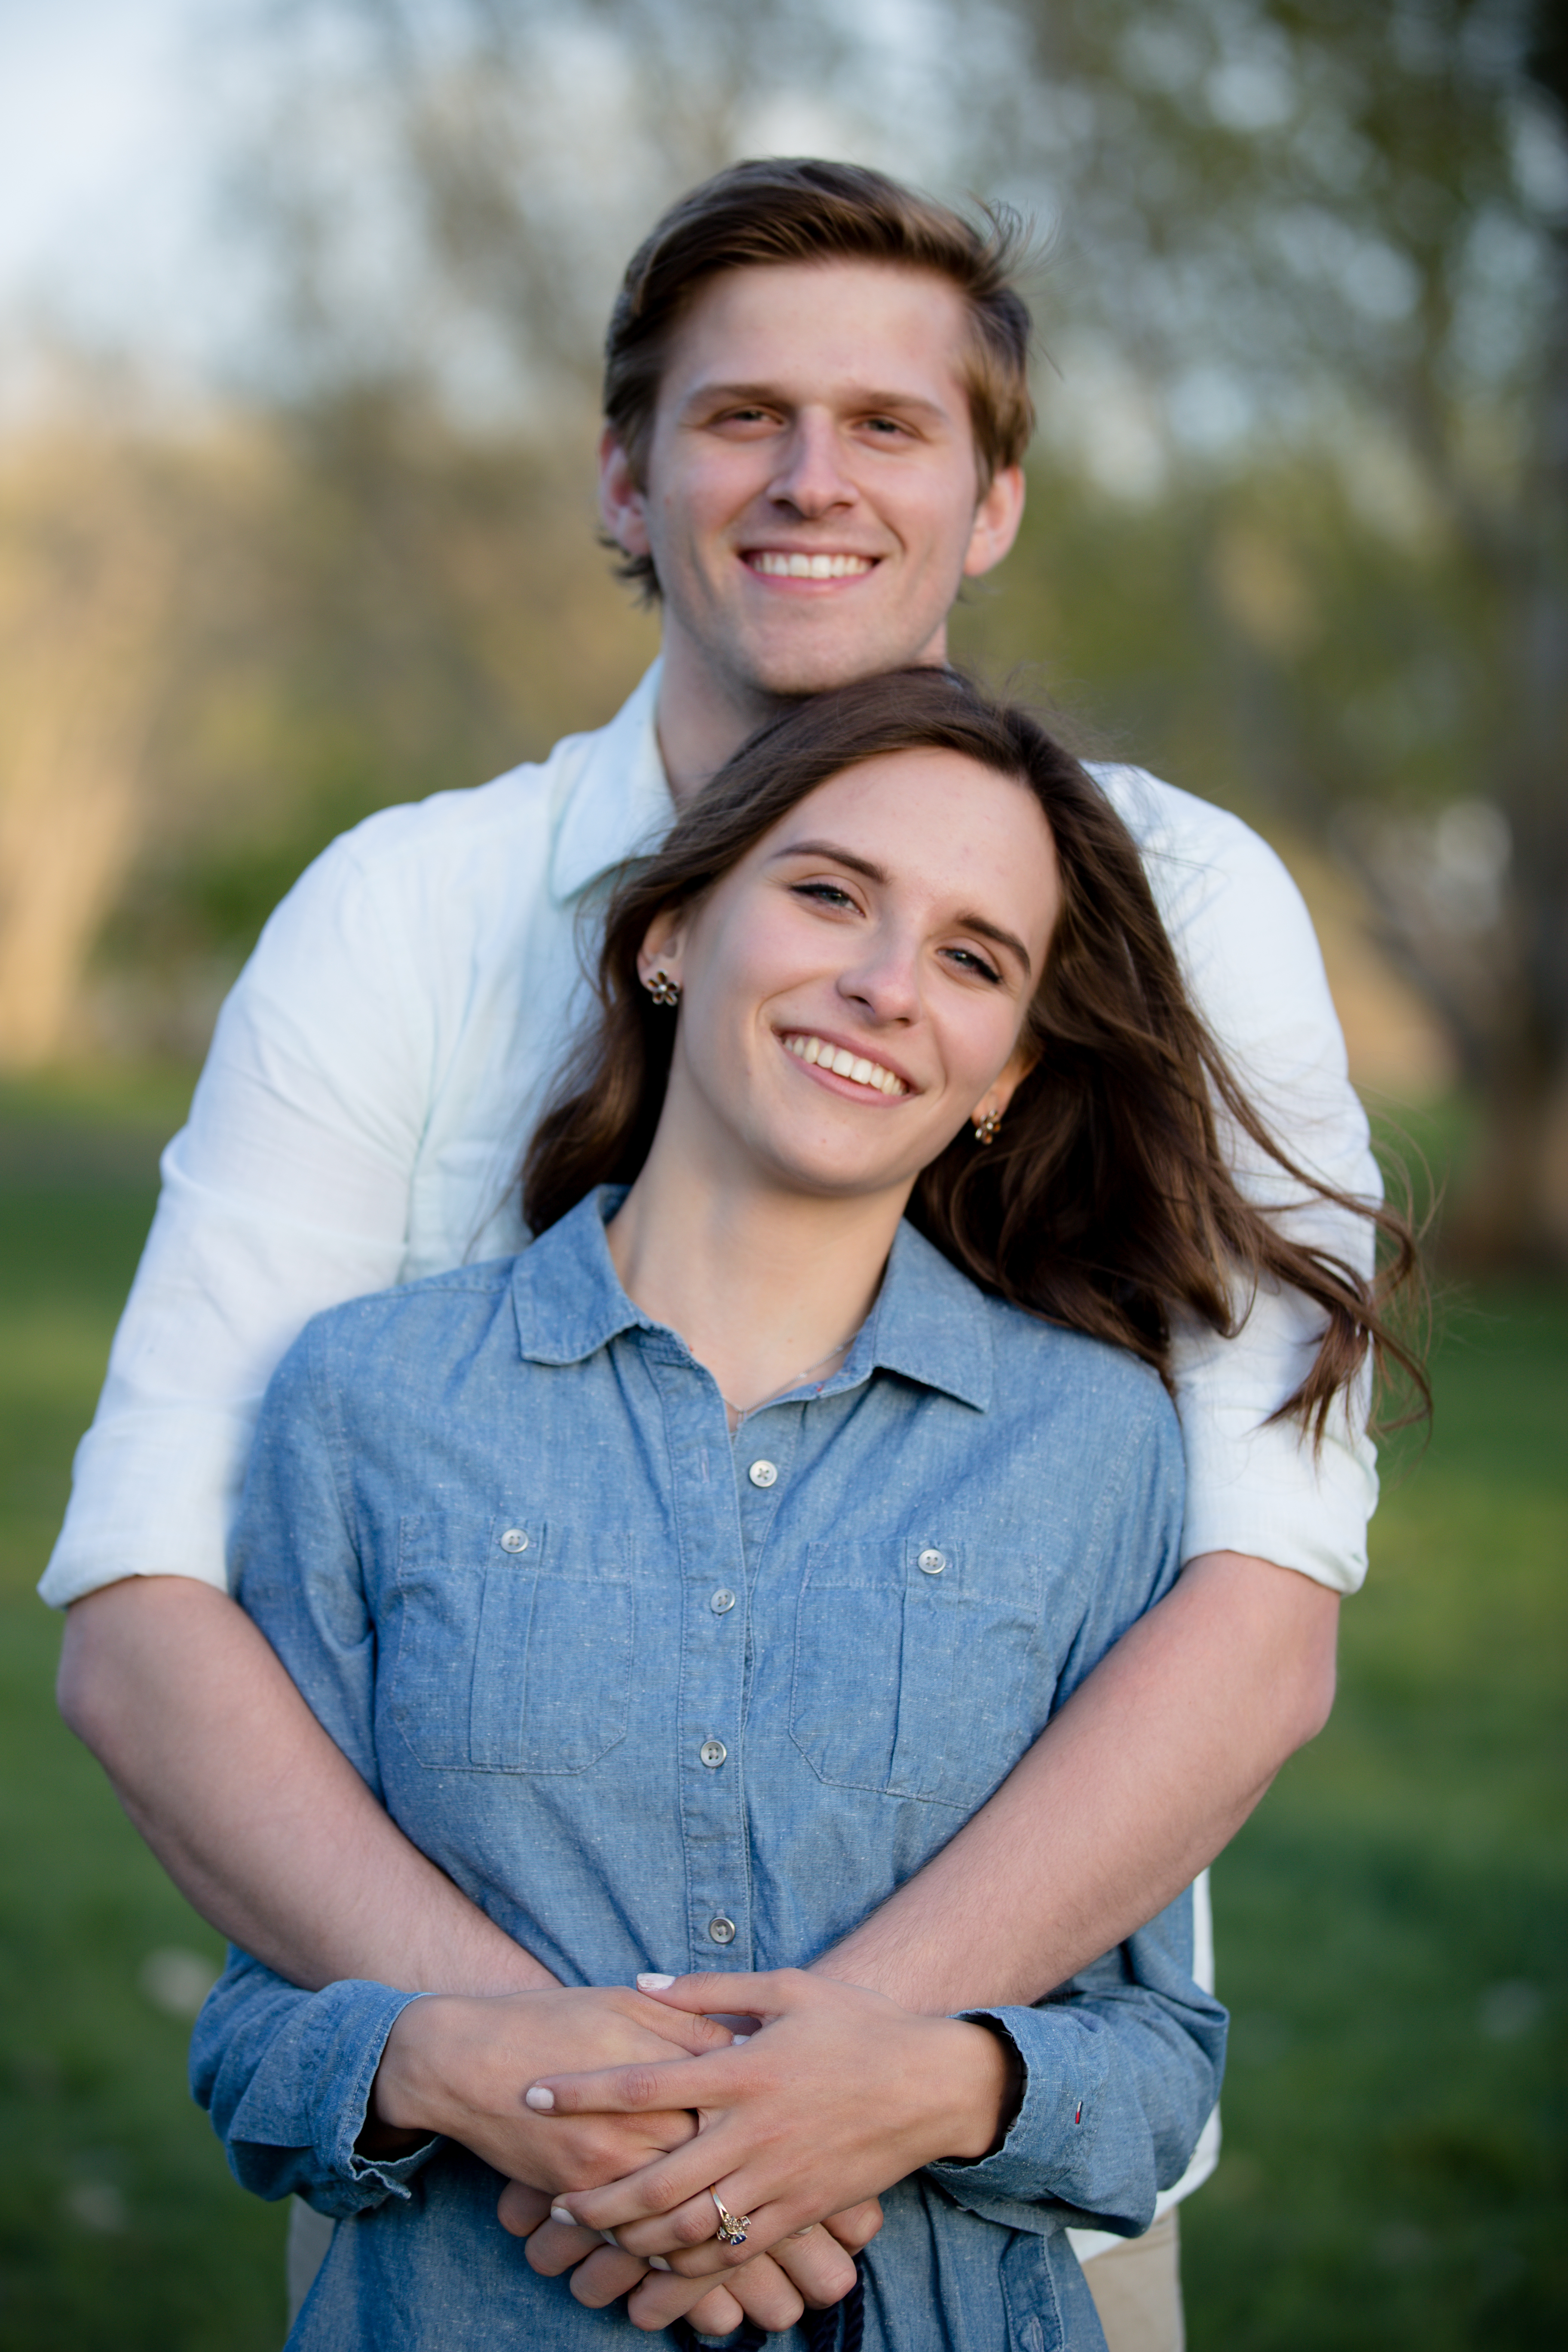 Texas premarital counseling not hit couples